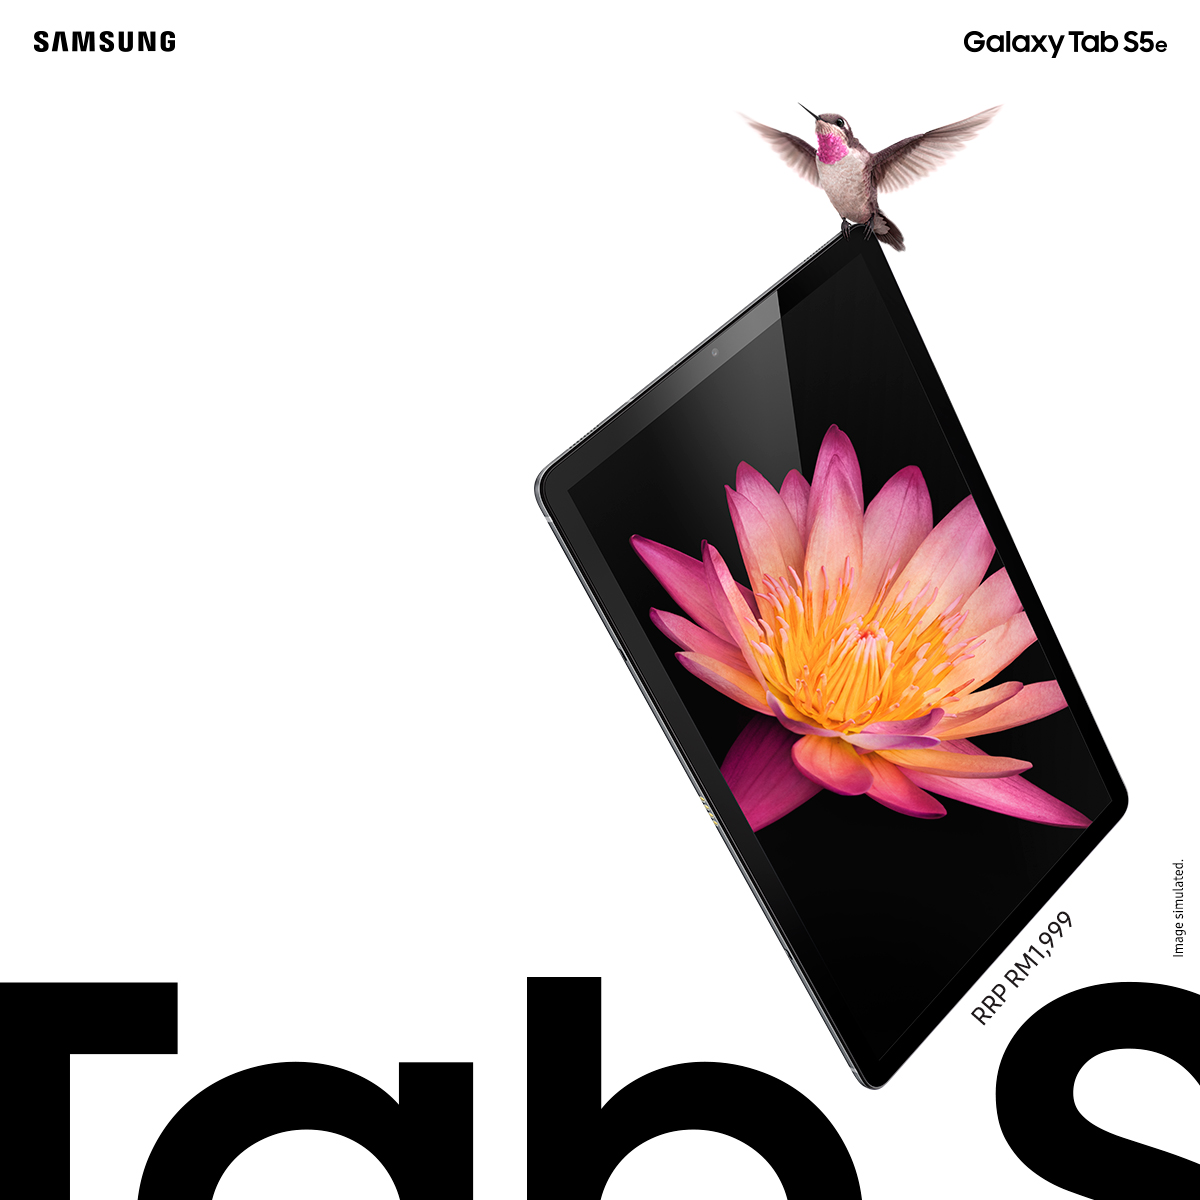 Introducing The New Galaxy Tab S5e And Tab A 2019 Models Perfect